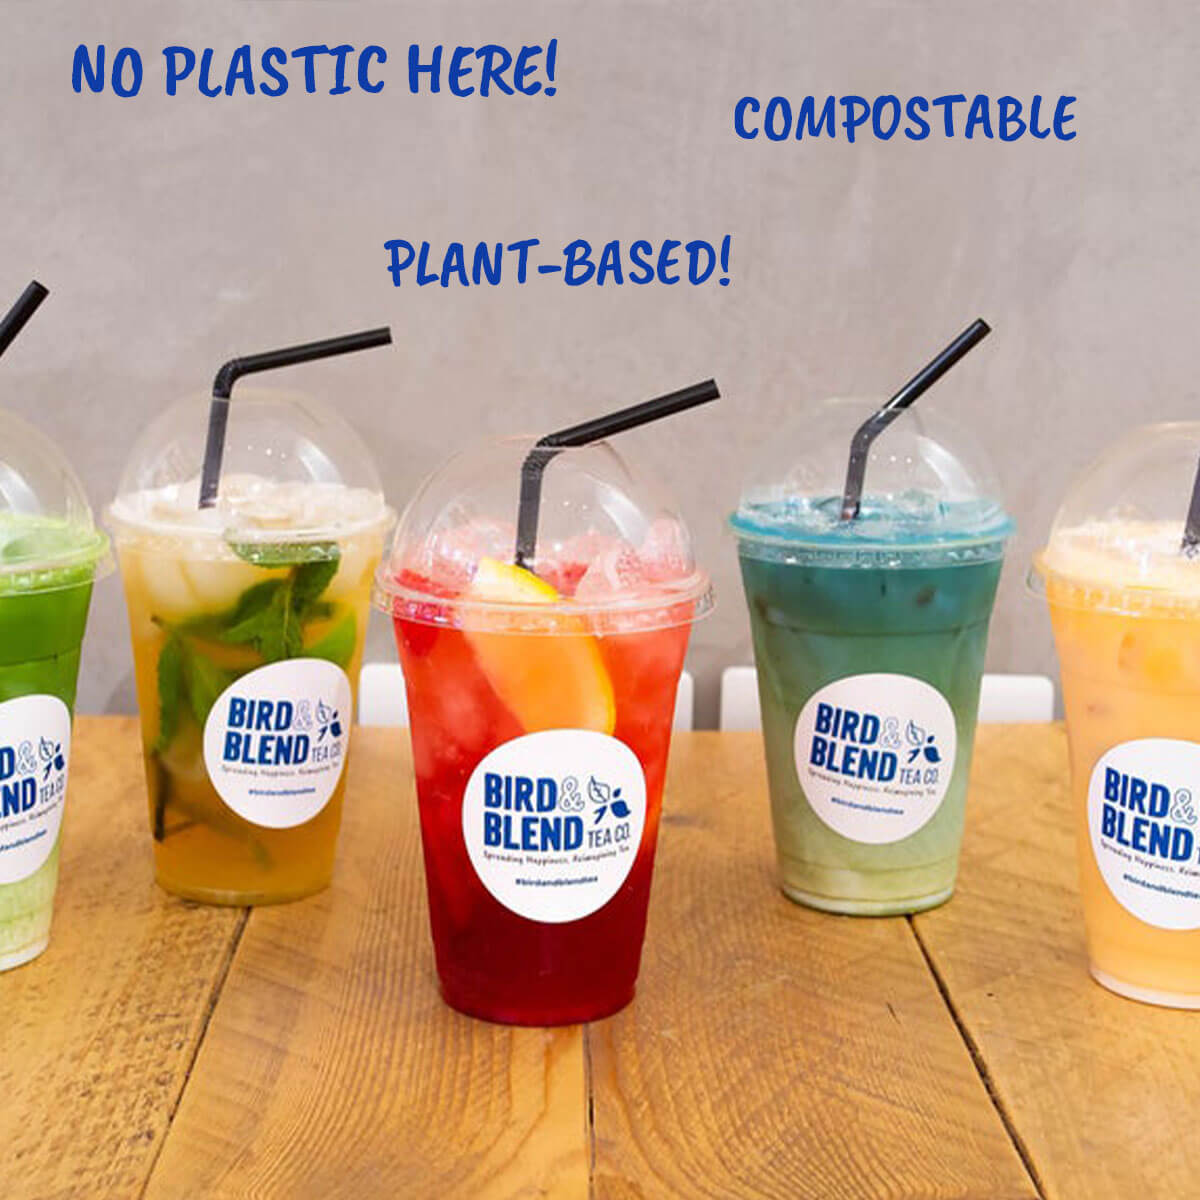 Our eco-friendly plastic-free takeaway cups. They are compostable!